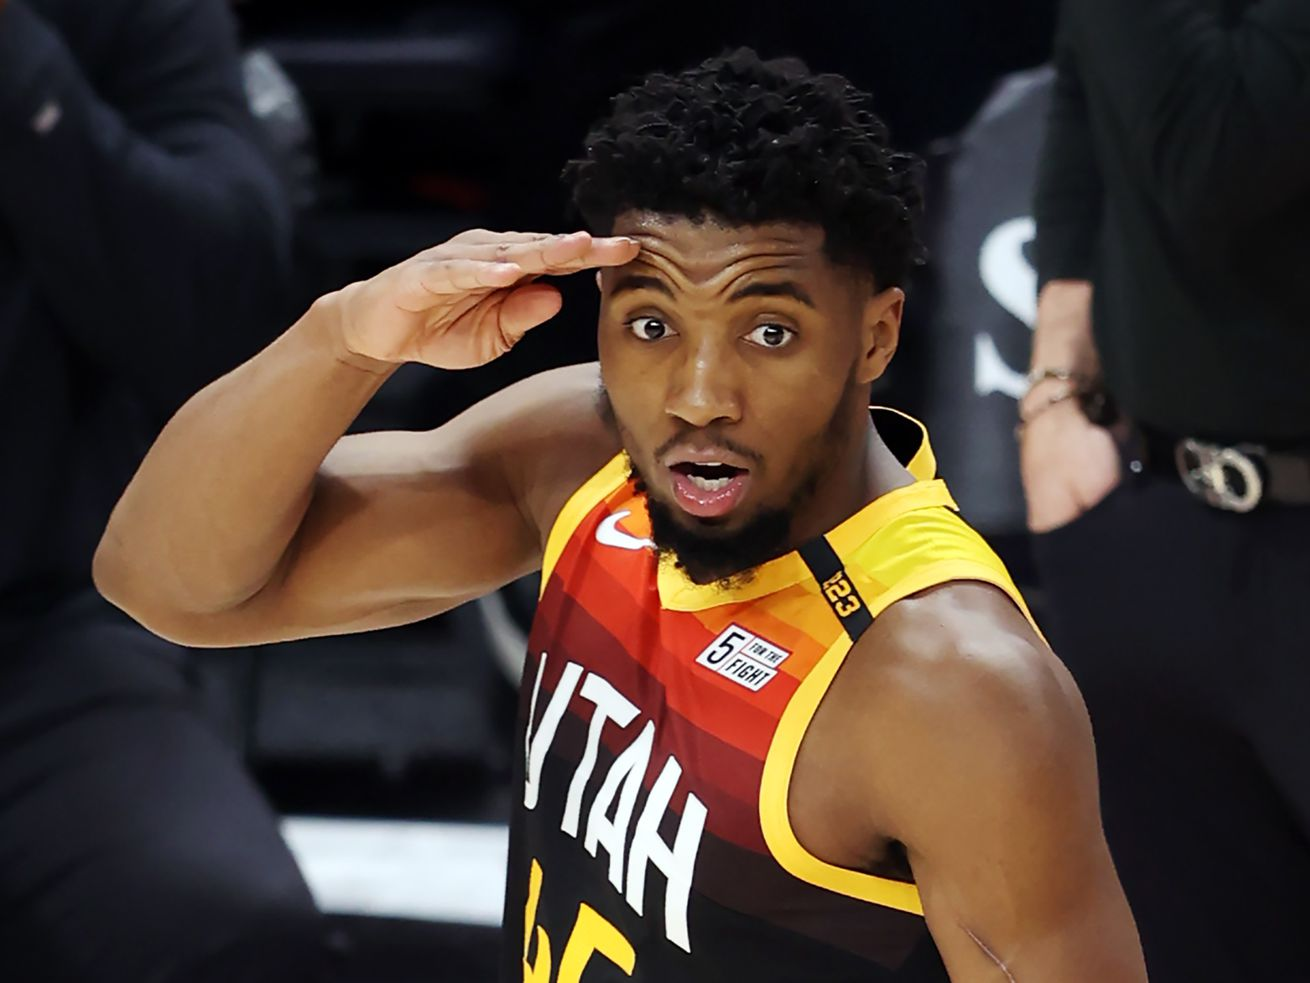 Utah Jazz guard Donovan Mitchell (45) salutes as the Utah Jazz and the Cleveland Cavaliers play an NBA basketball game at Vivint Smart Home Arena in Salt Lake City on Monday, March 29, 2021. Utah won 114-75.